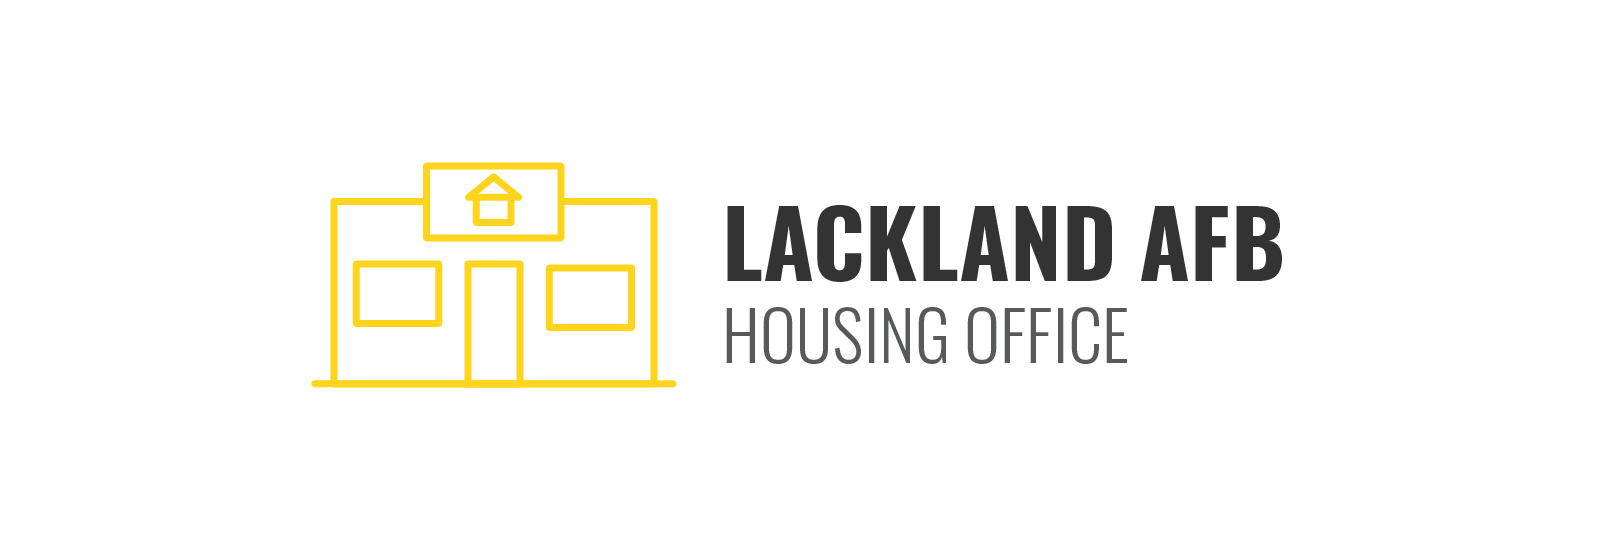 Lackland Air Force Housing Office